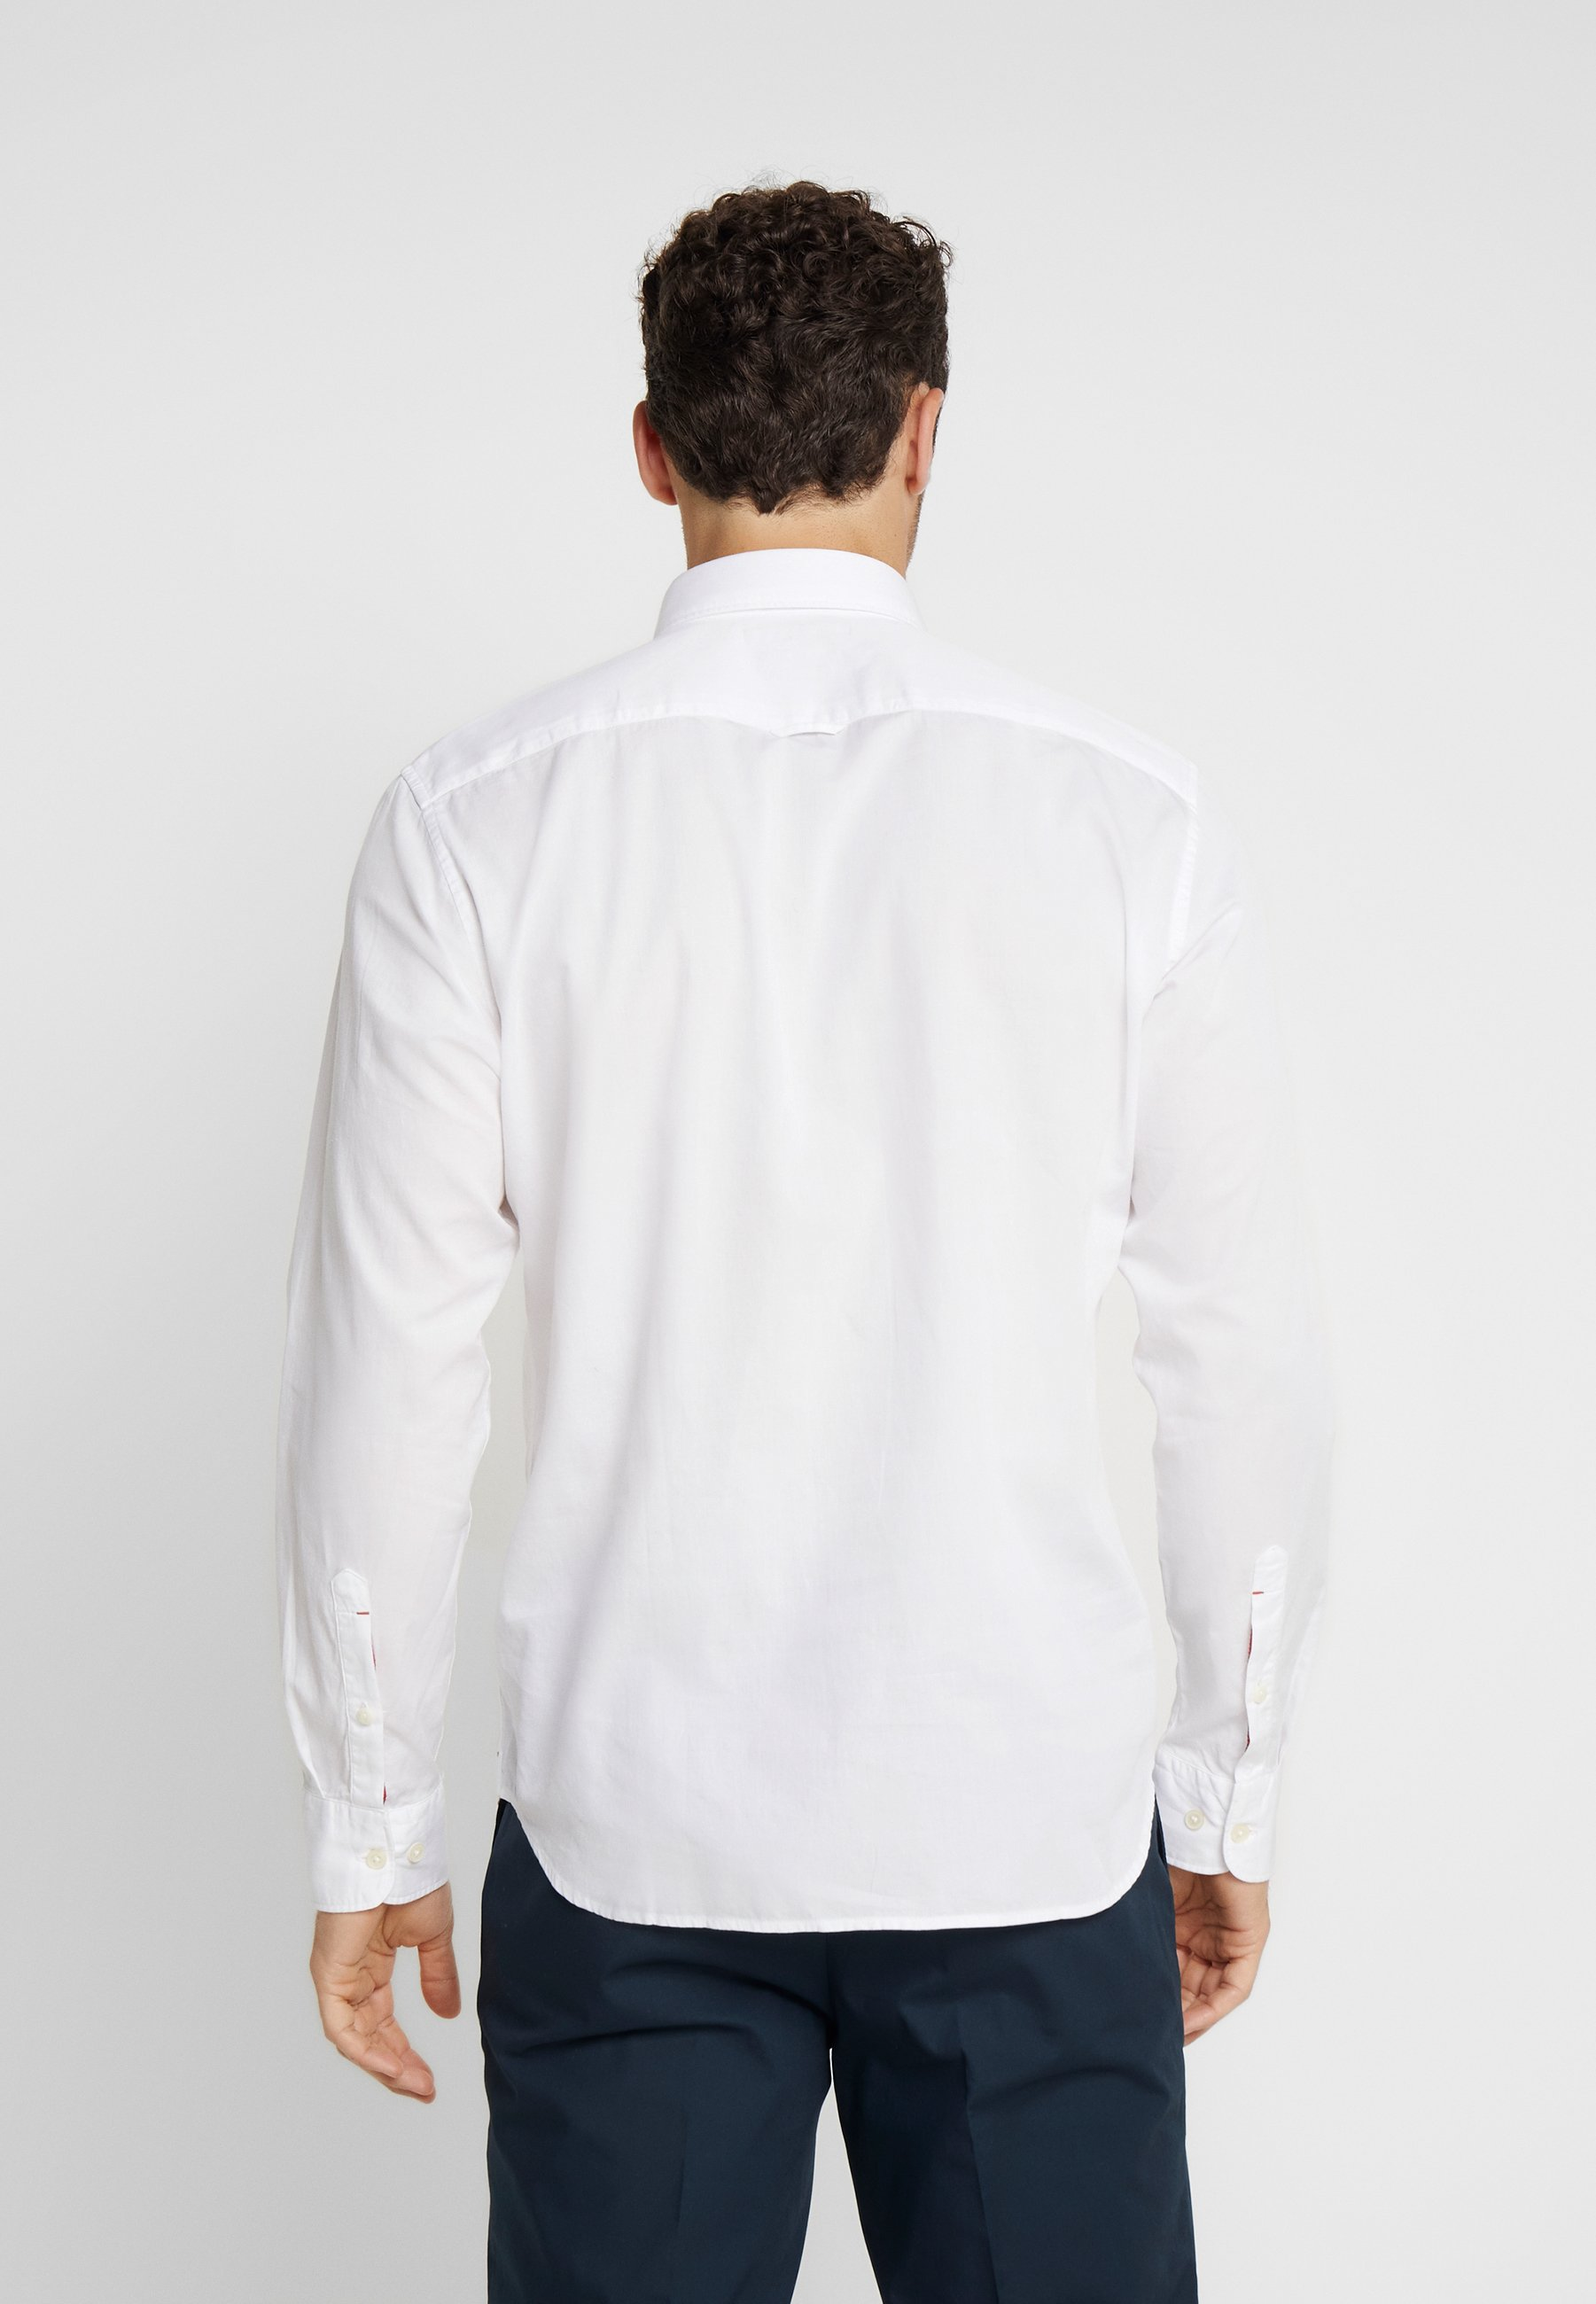 Marc O'Polo FINE BEDFORD GARMENT DYED Skjorte white